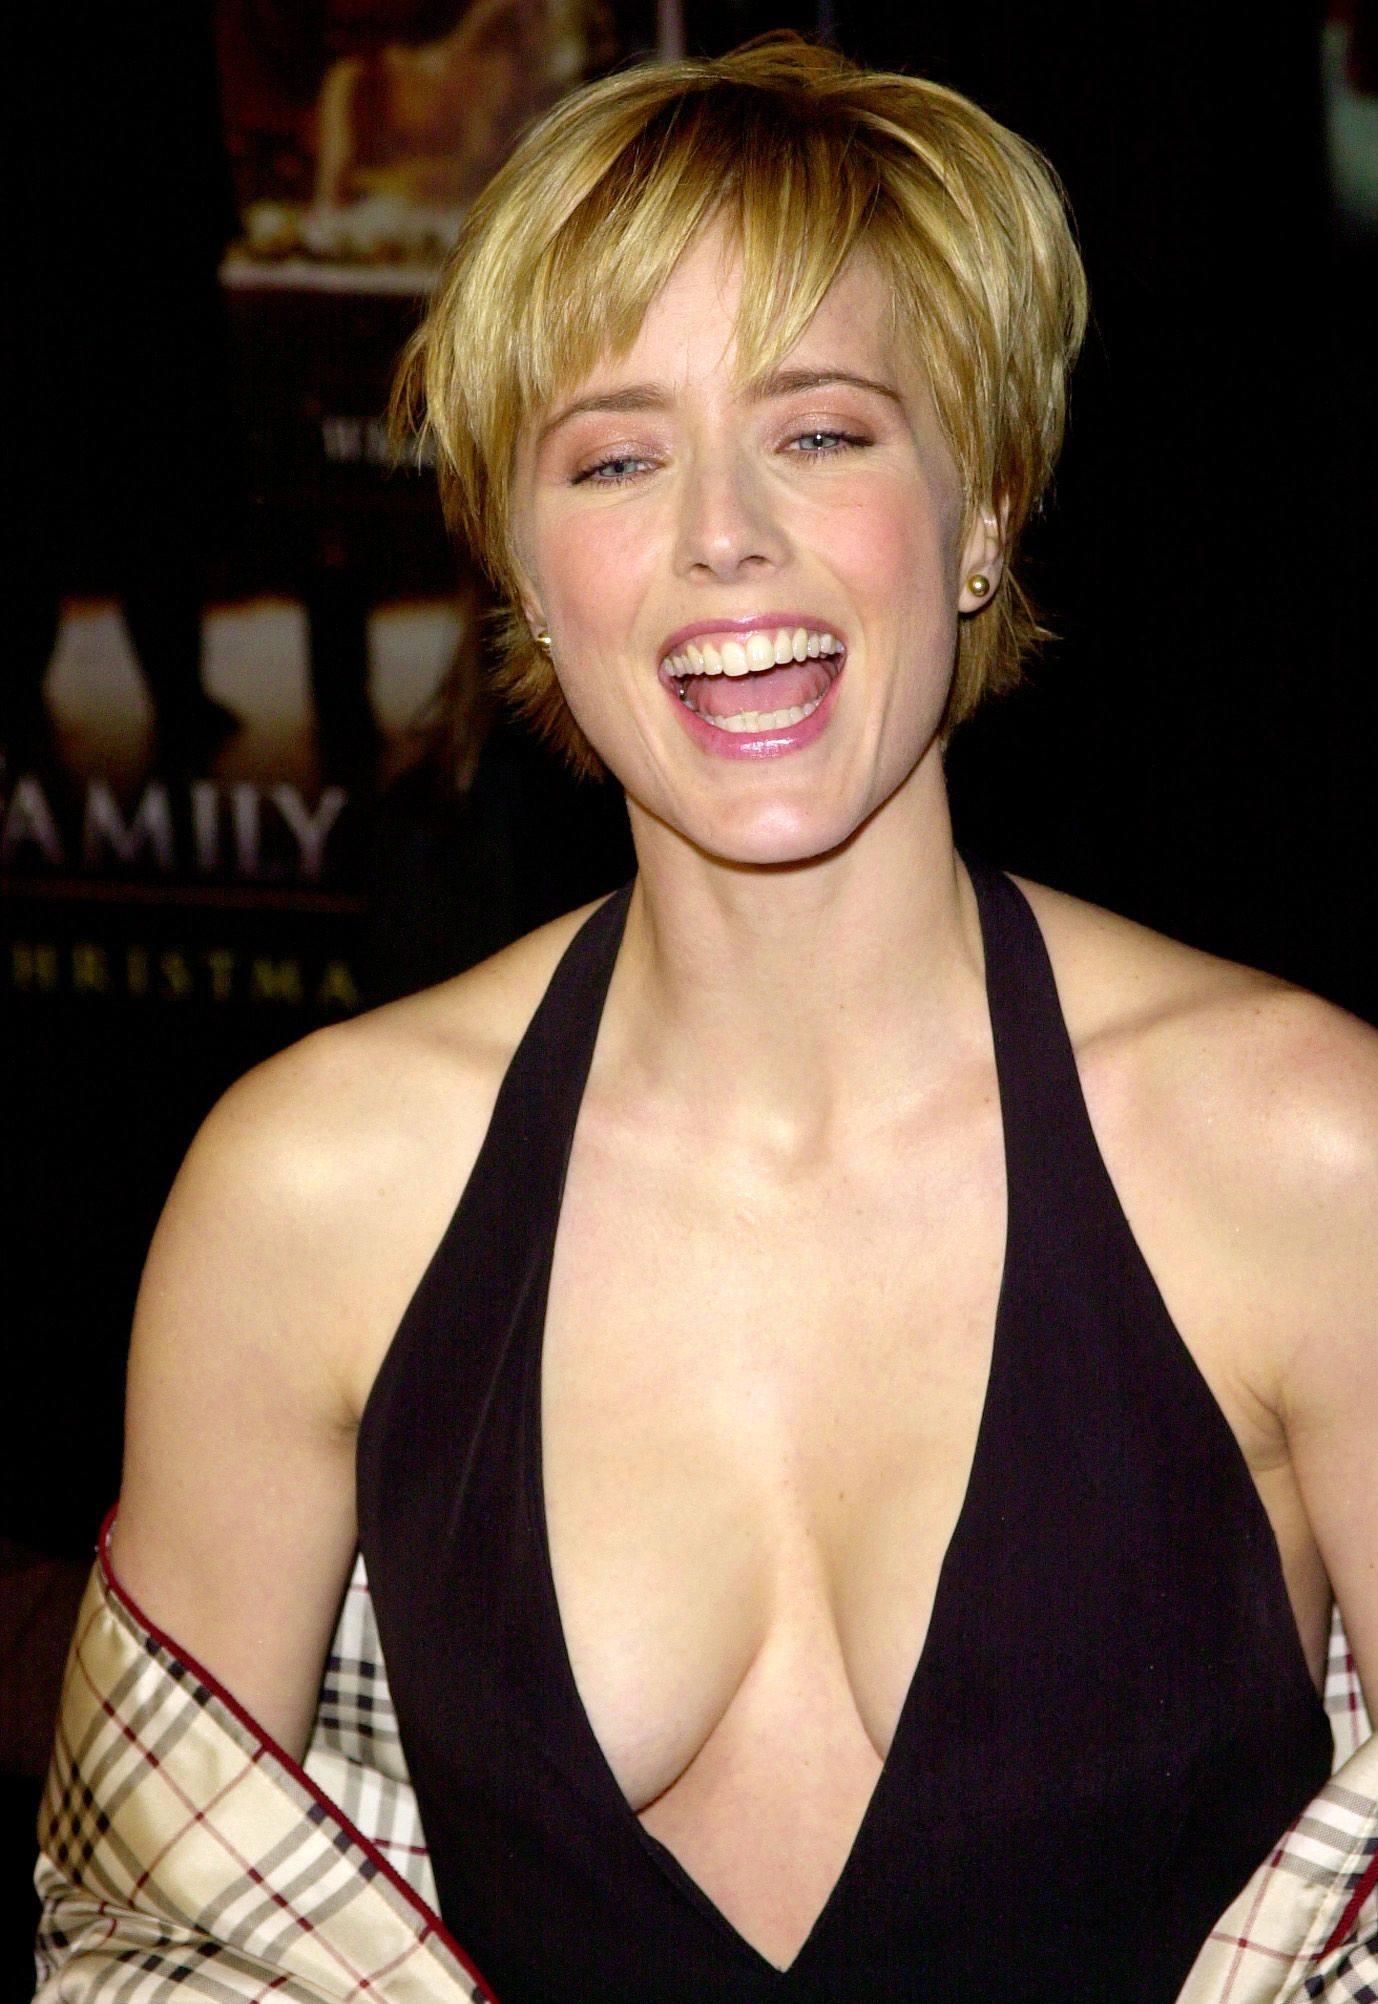 Selfie Tea Leoni nude (44 foto and video), Ass, Fappening, Boobs, butt 2015